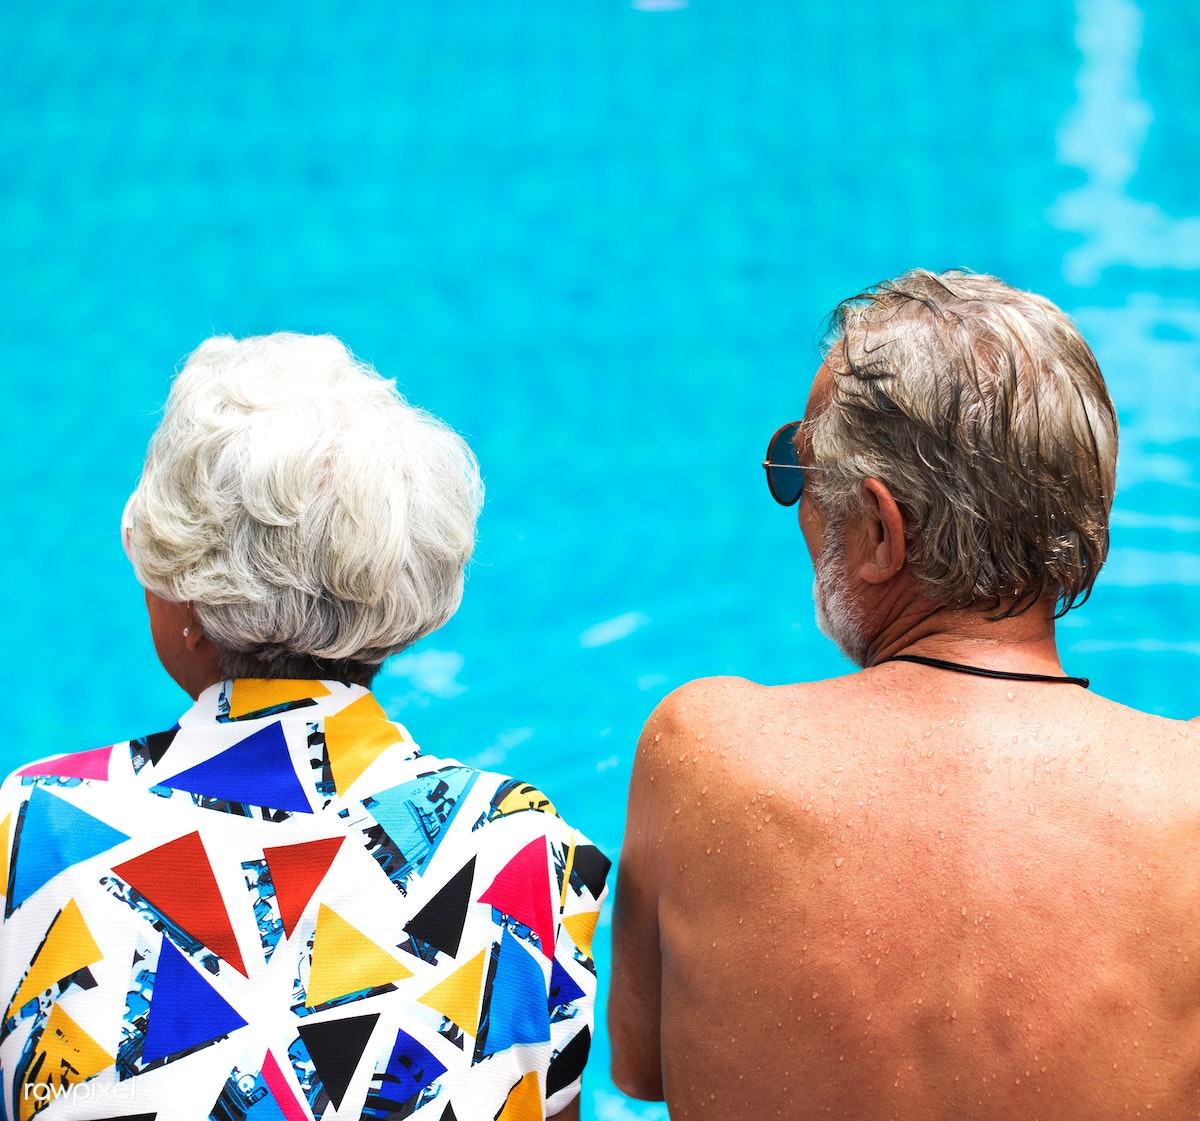 5caee1bed4e7f Old people at the pool | Royalty free stock photo - 8313